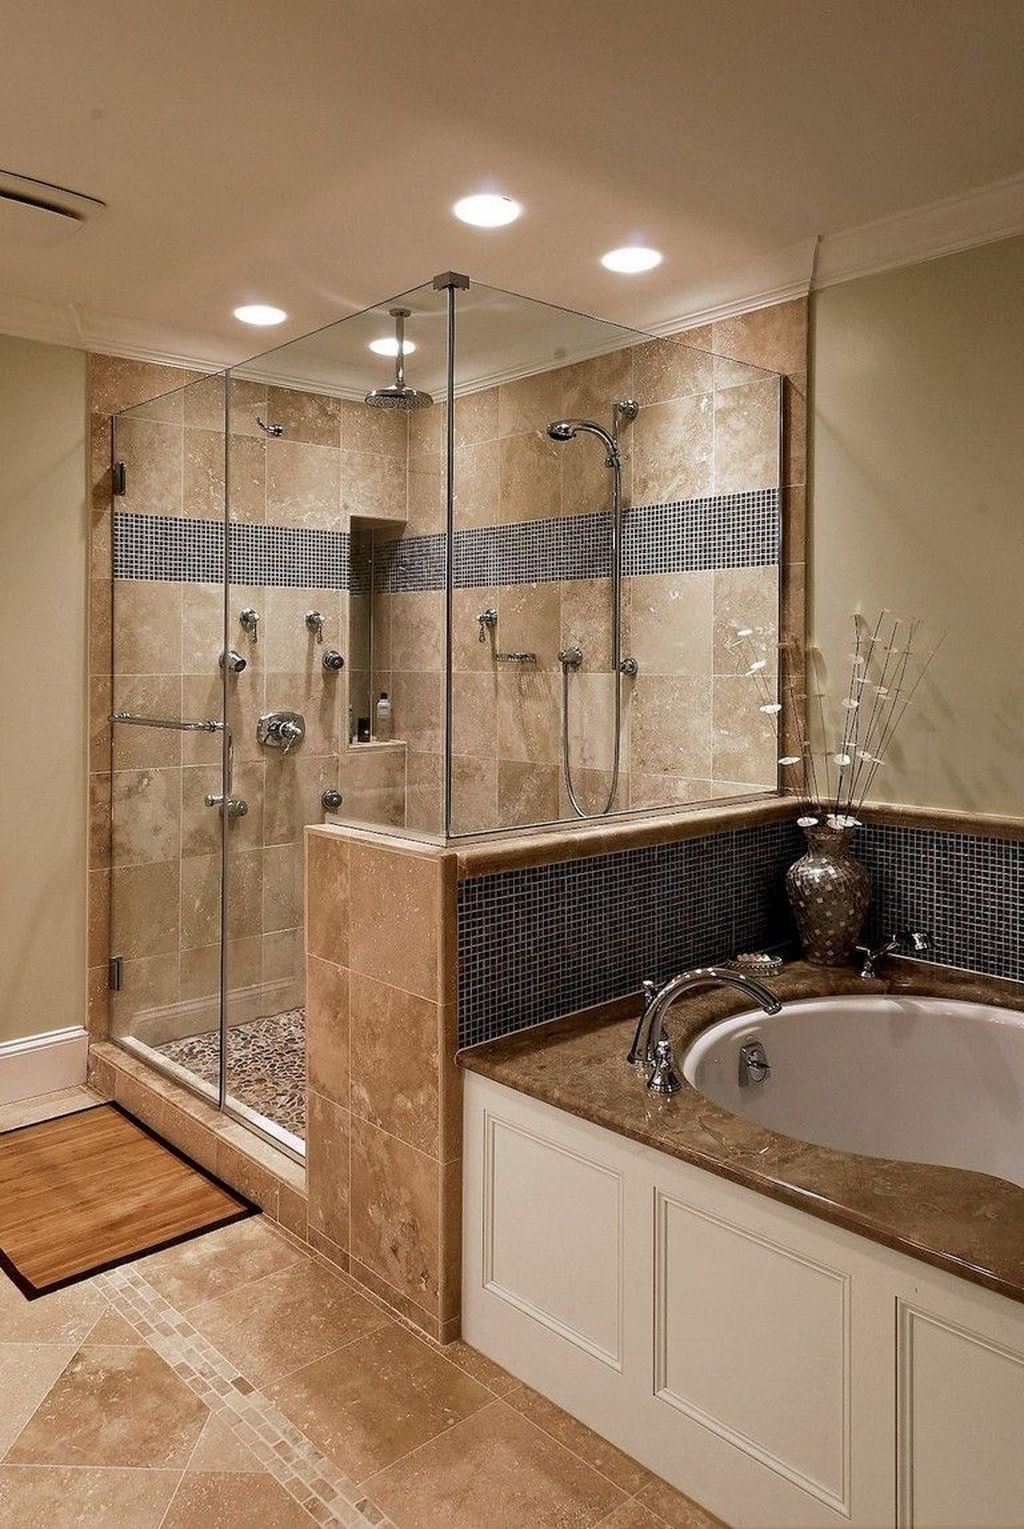 20+ Amazing Bathroom Shower Remodel Ideas On A Budget in ...